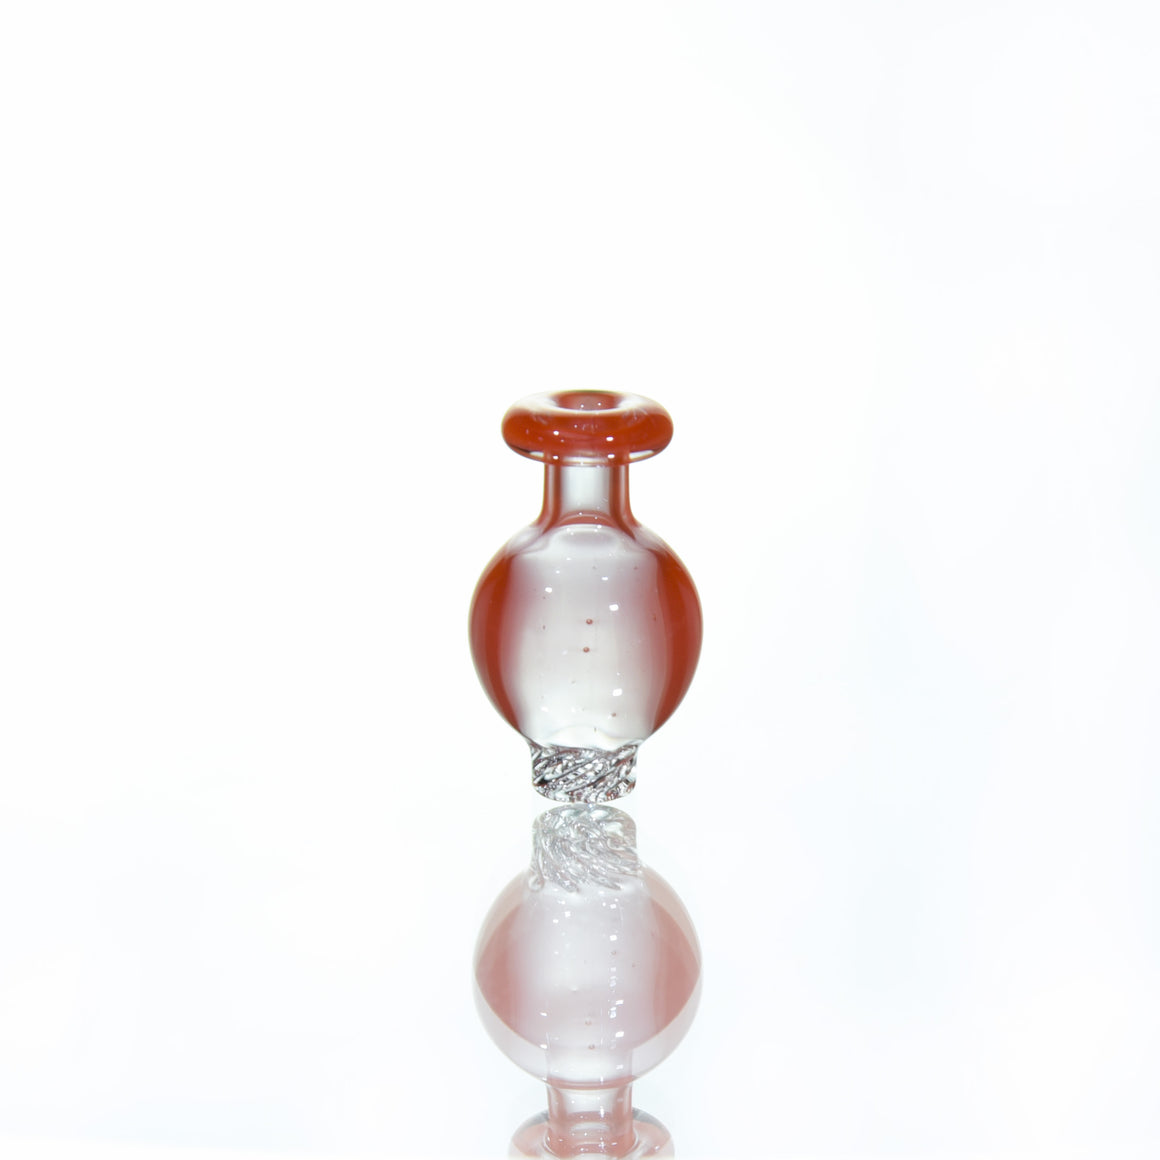 Mini RipTide Bubble Cap (for <20mm Buckets, PuffCo and Carta vapes) - OrangeCrayon